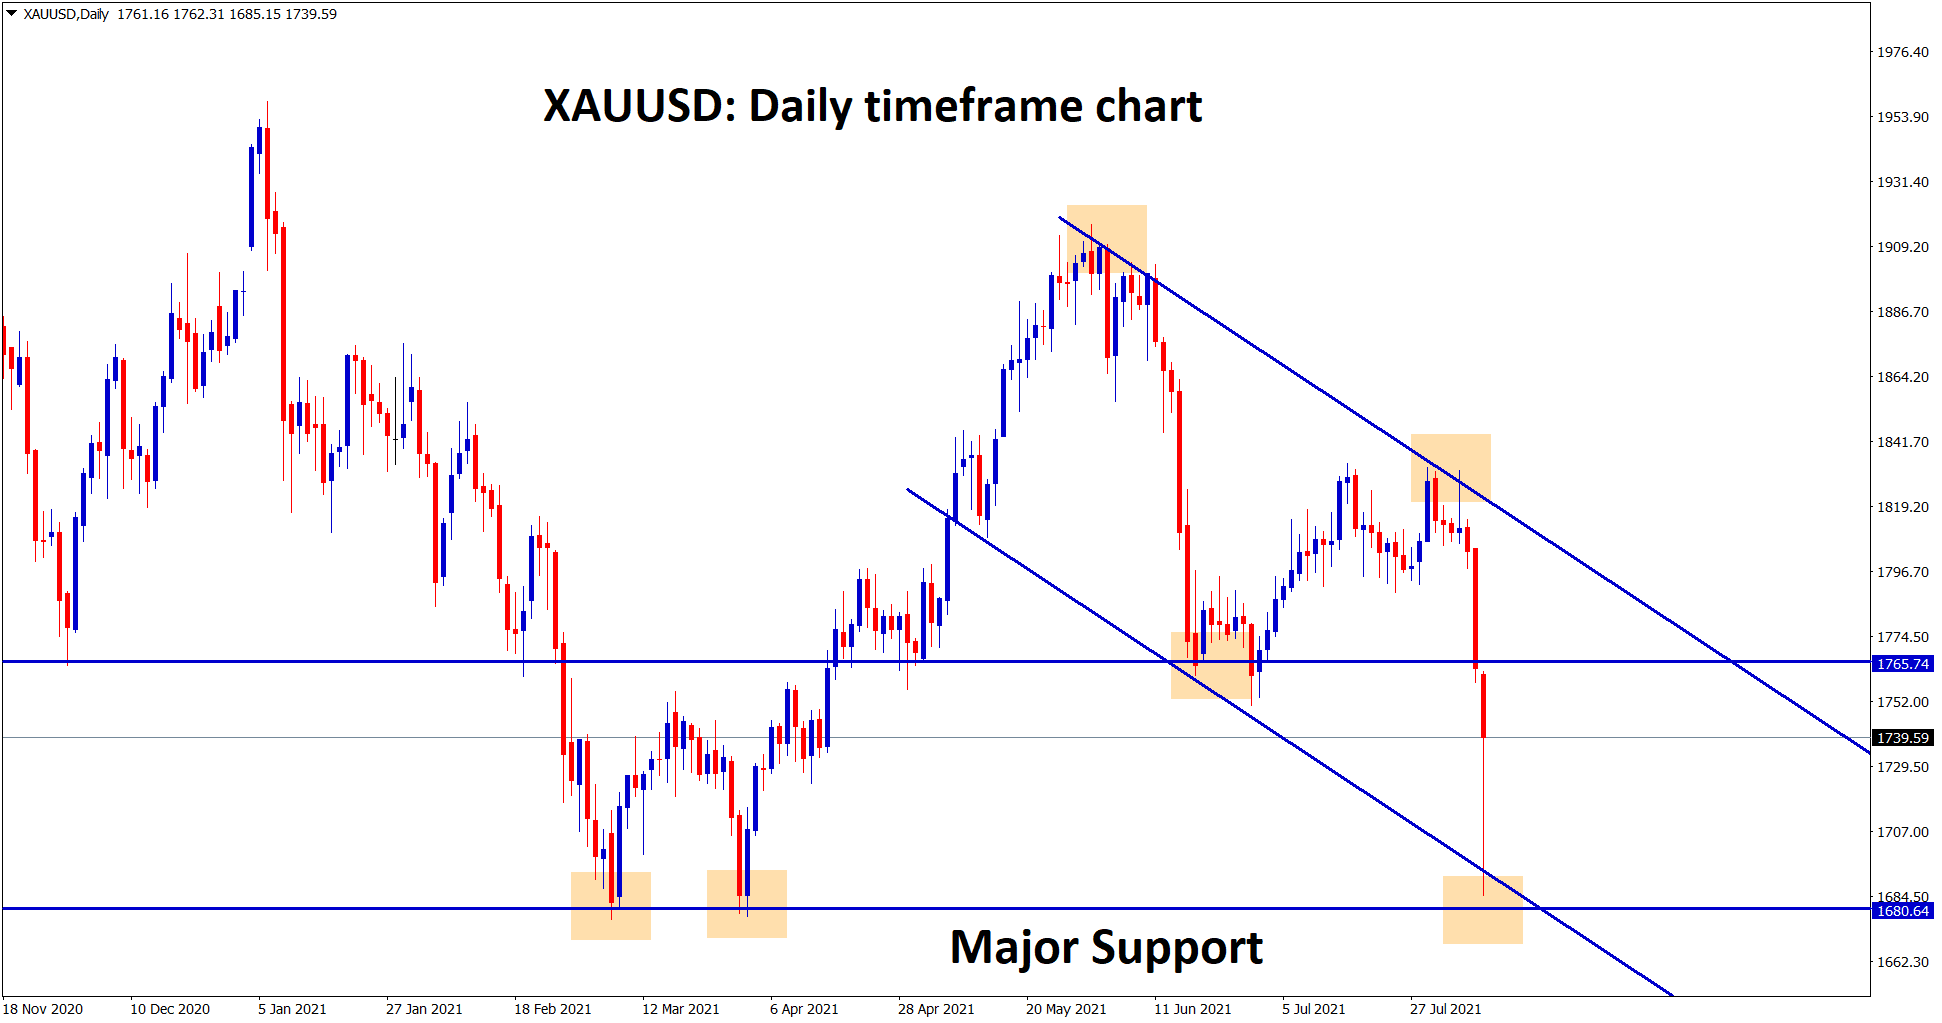 Gold has retested the support zone 1690 range today Monday after market opening